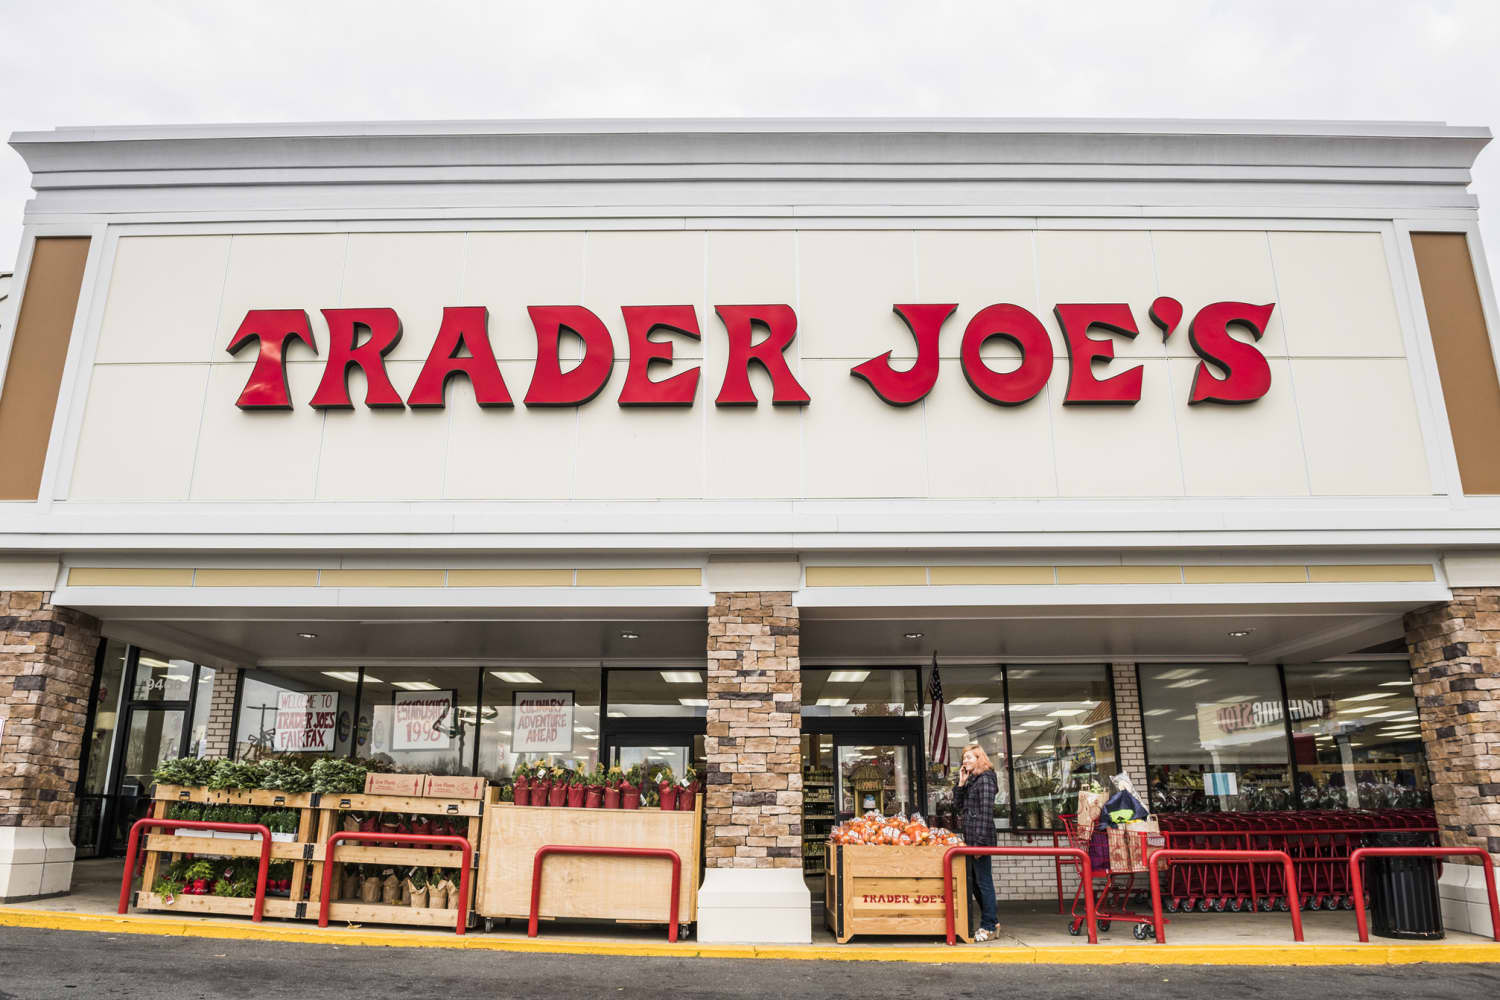 Trader Joe's Just Leaked Info on 2 Incredible New Cheeses That'll Hit Stores Soon